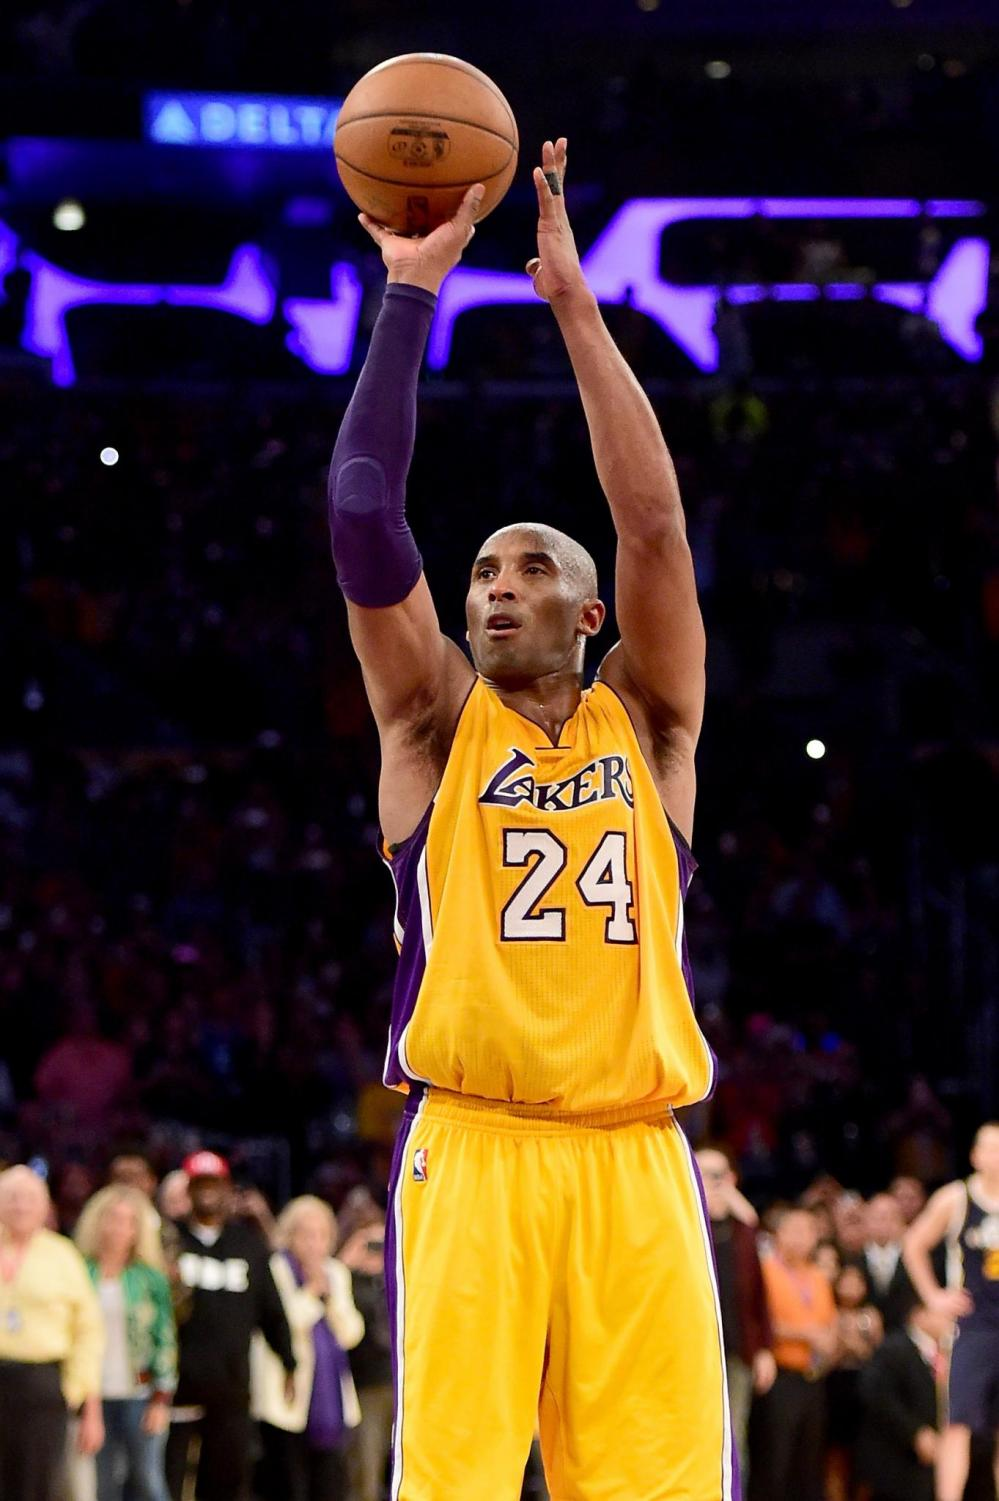 Kobe Bryant takes his shot against the Utah Jazz. On Sunday, Jan. 26, Bryant and his daughter Gianna died in a helicopter crash.